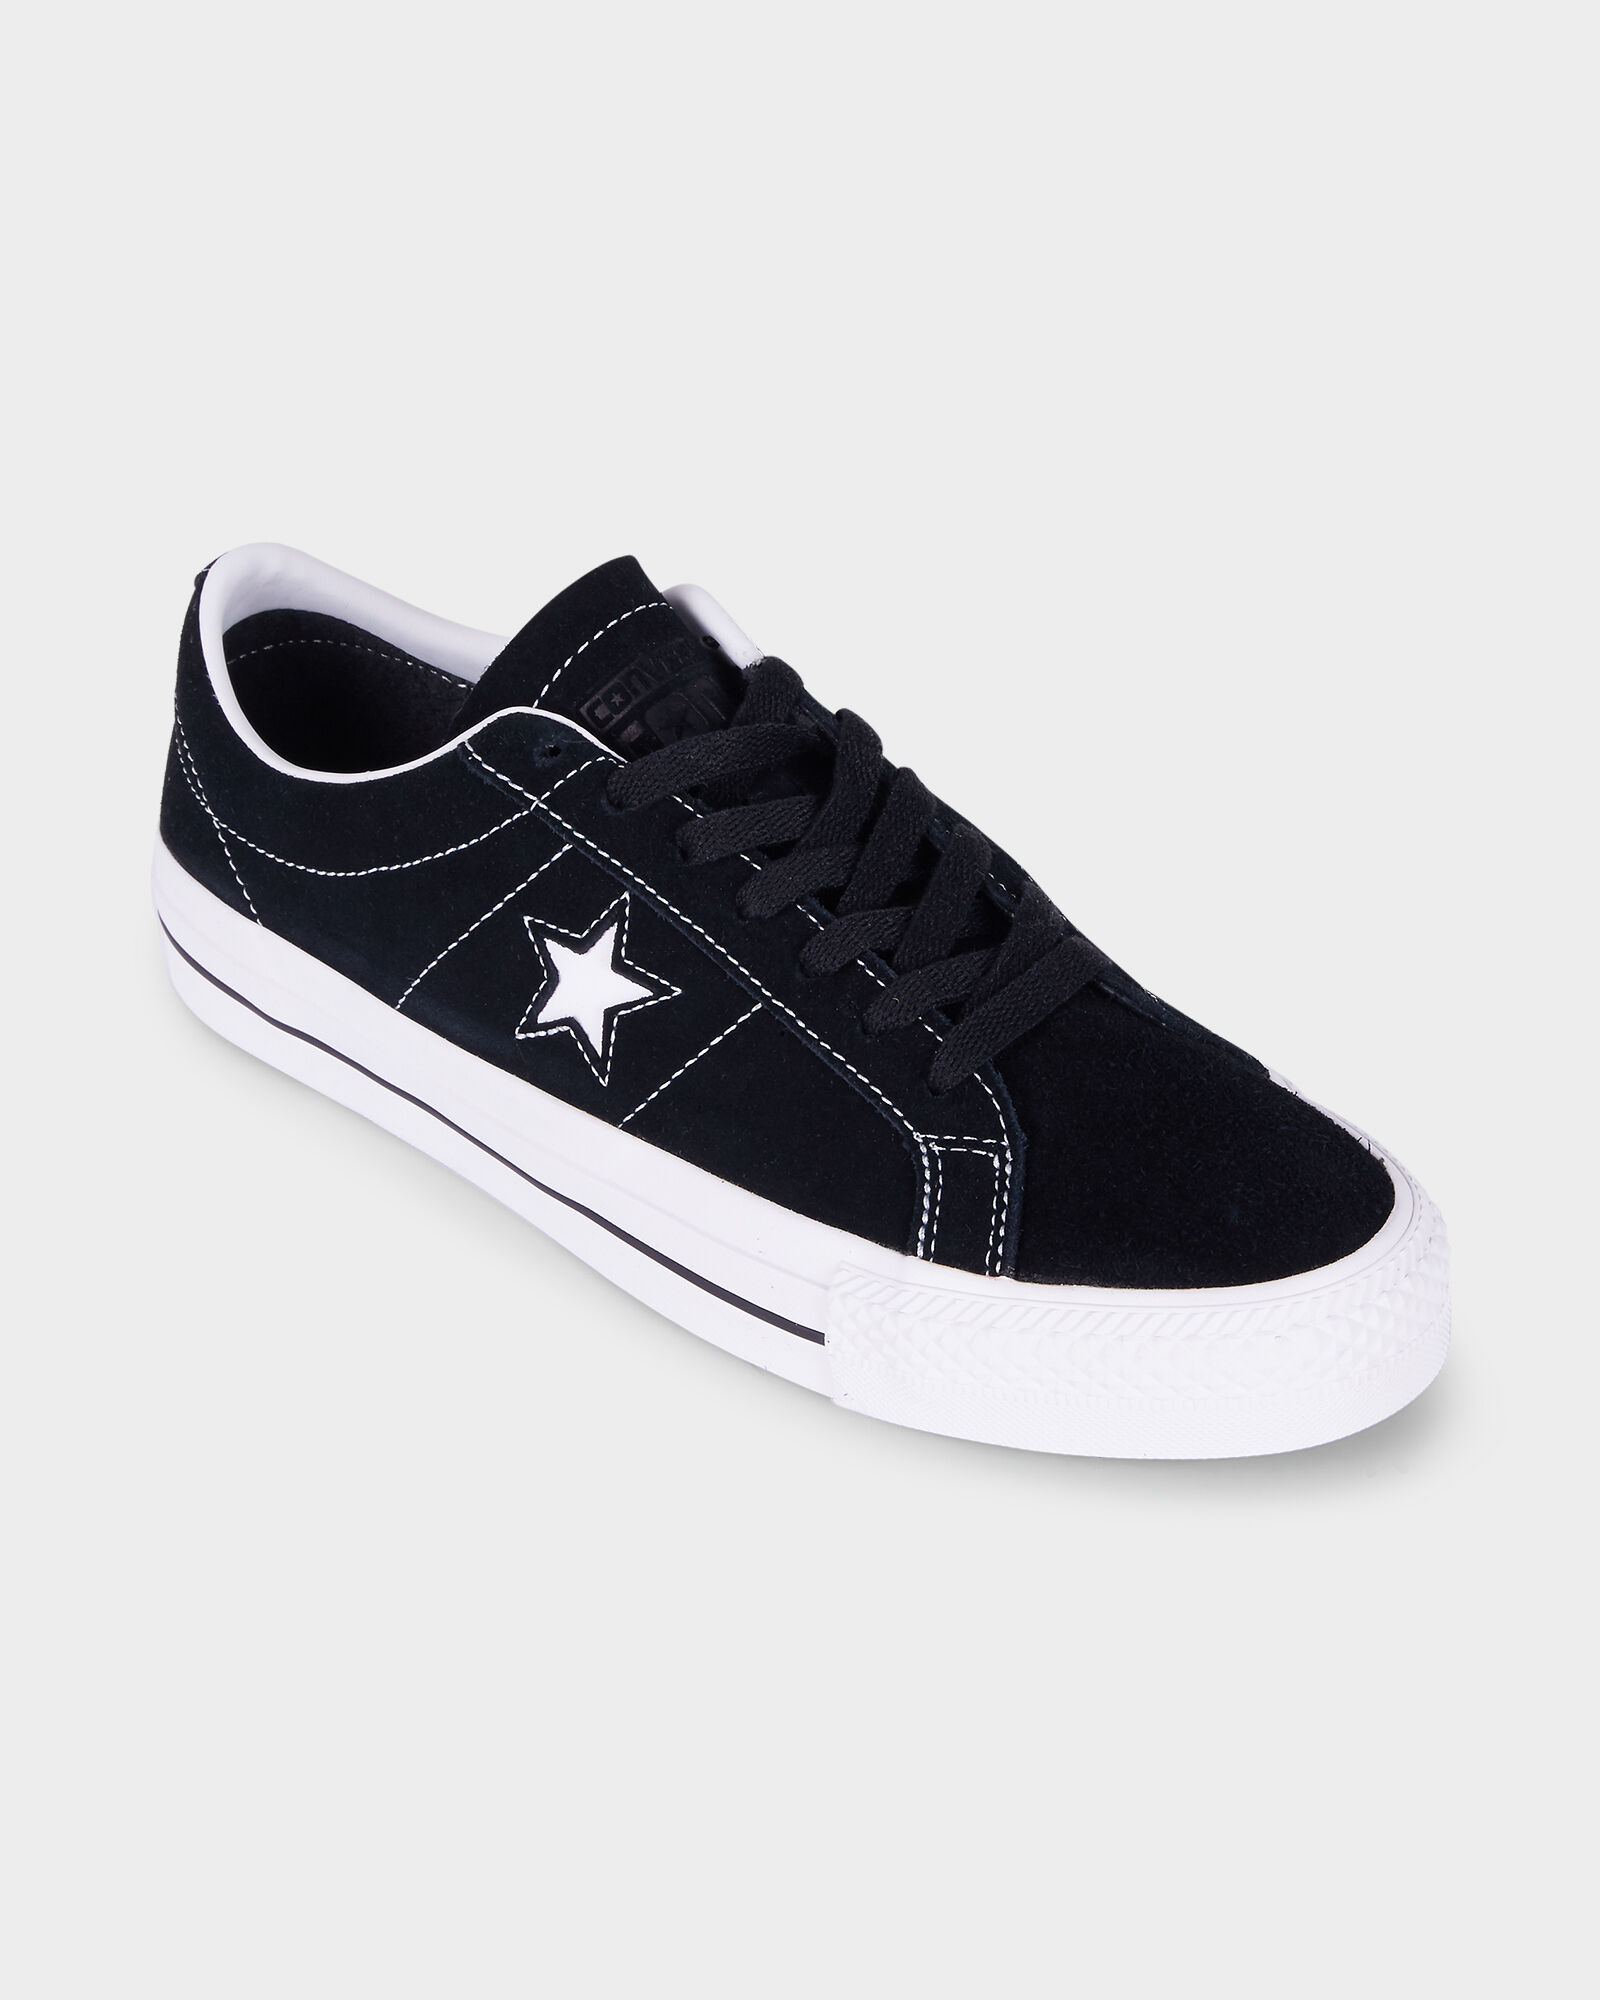 CONVERSE ONE STAR PRO LOW SUEDE BLACK